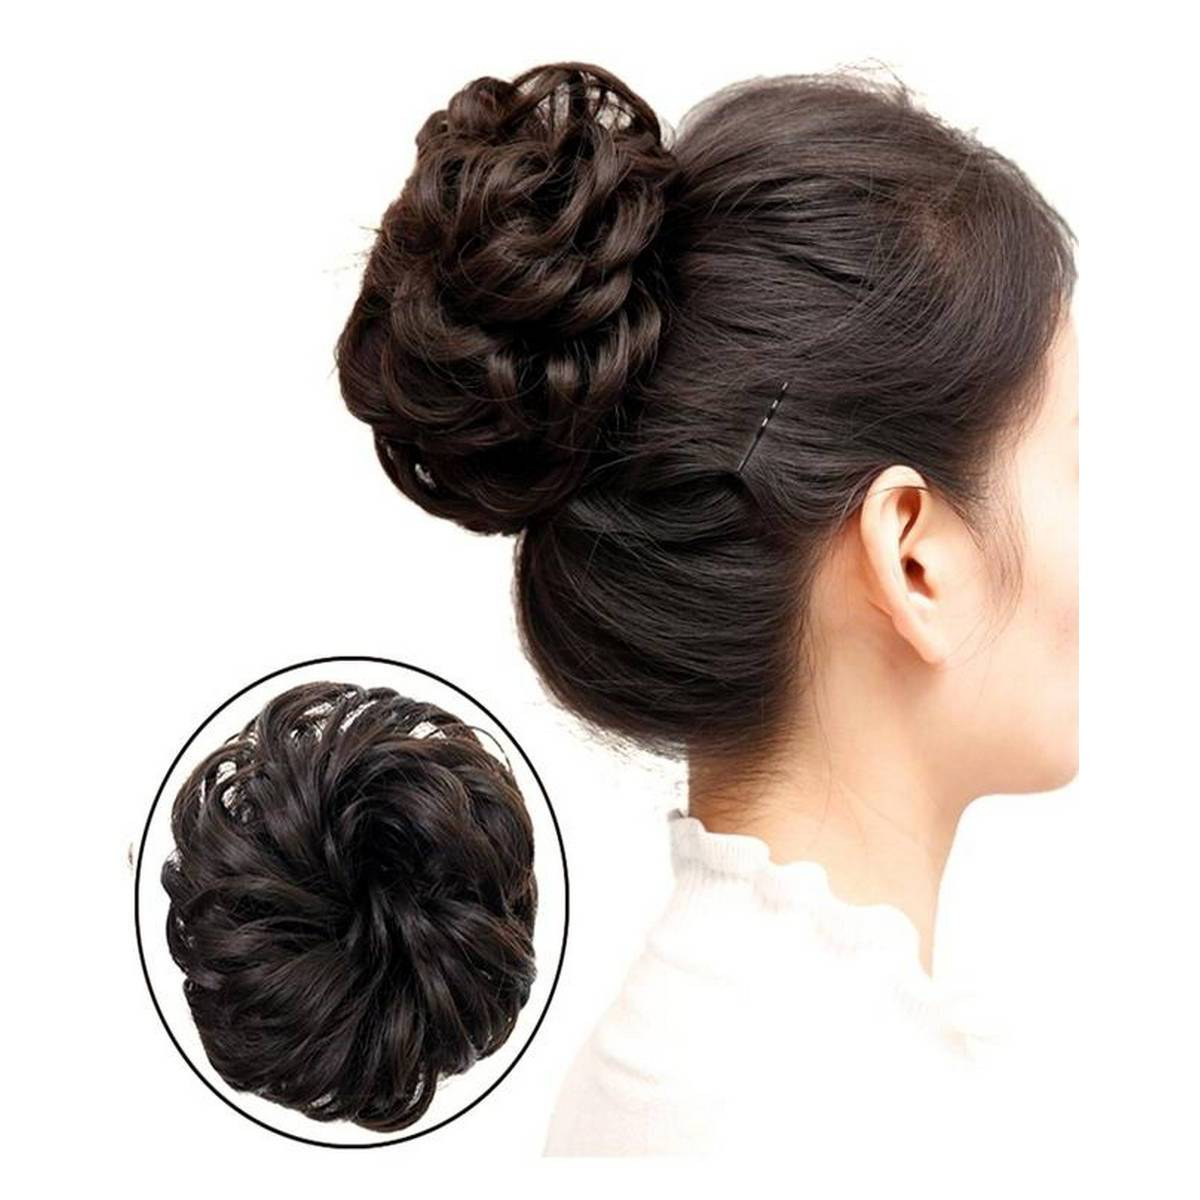 Synthetic Hair Chignons Elastic Scrunchie Extensions Hair Ponytail Bundles Updo Hairpieces Hair Buns